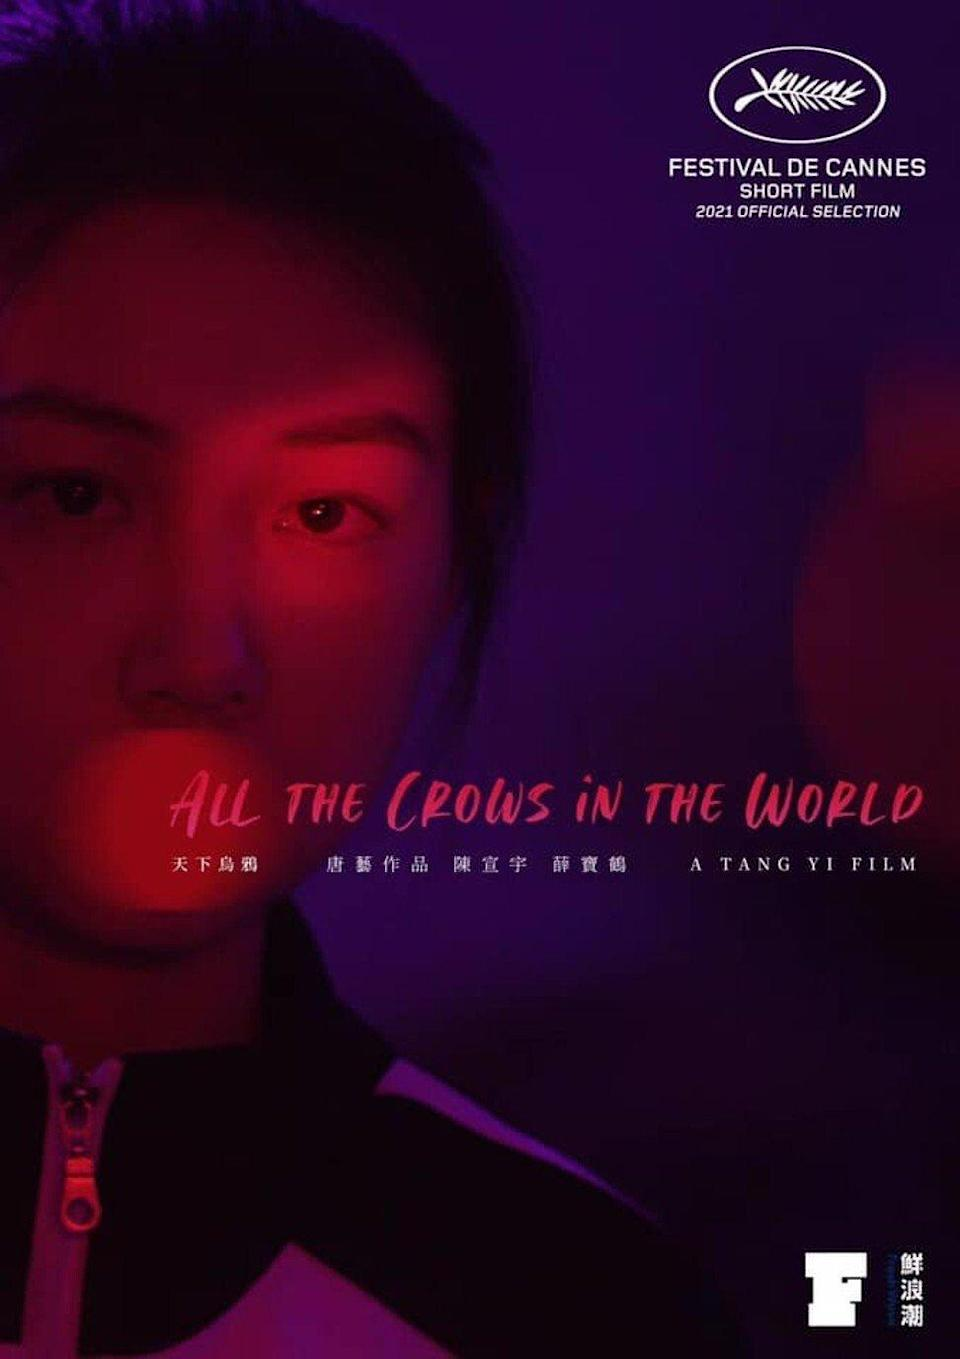 All the Crows in the City follows a teenage student, played by Chen Xuanyu, who is invited to a strange party. Photo: Handout